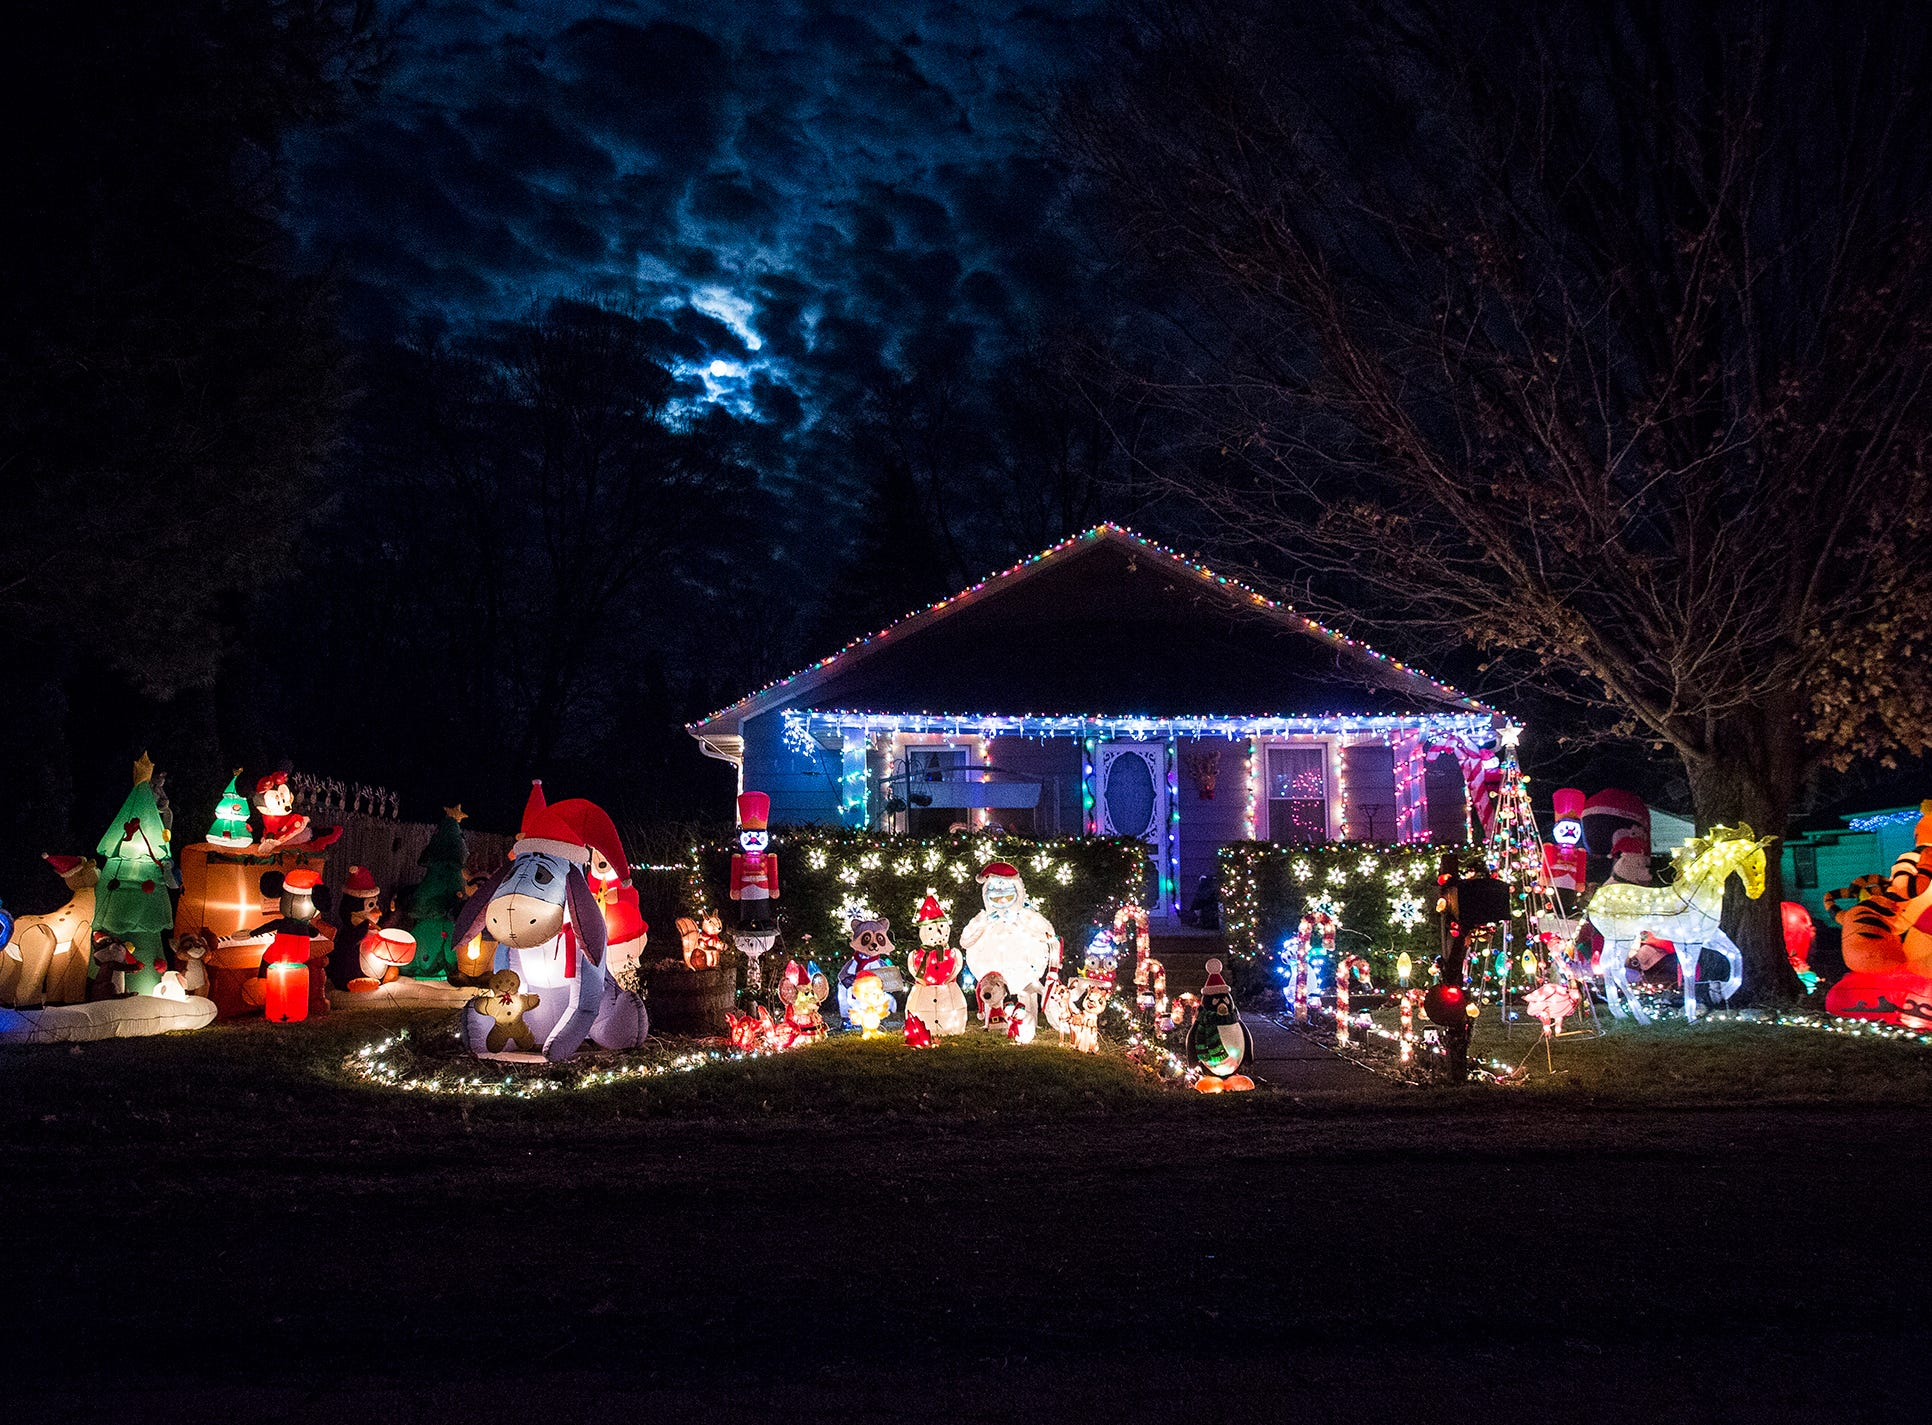 Christmas decorations light up a house on S. Ribble Street in Muncie.